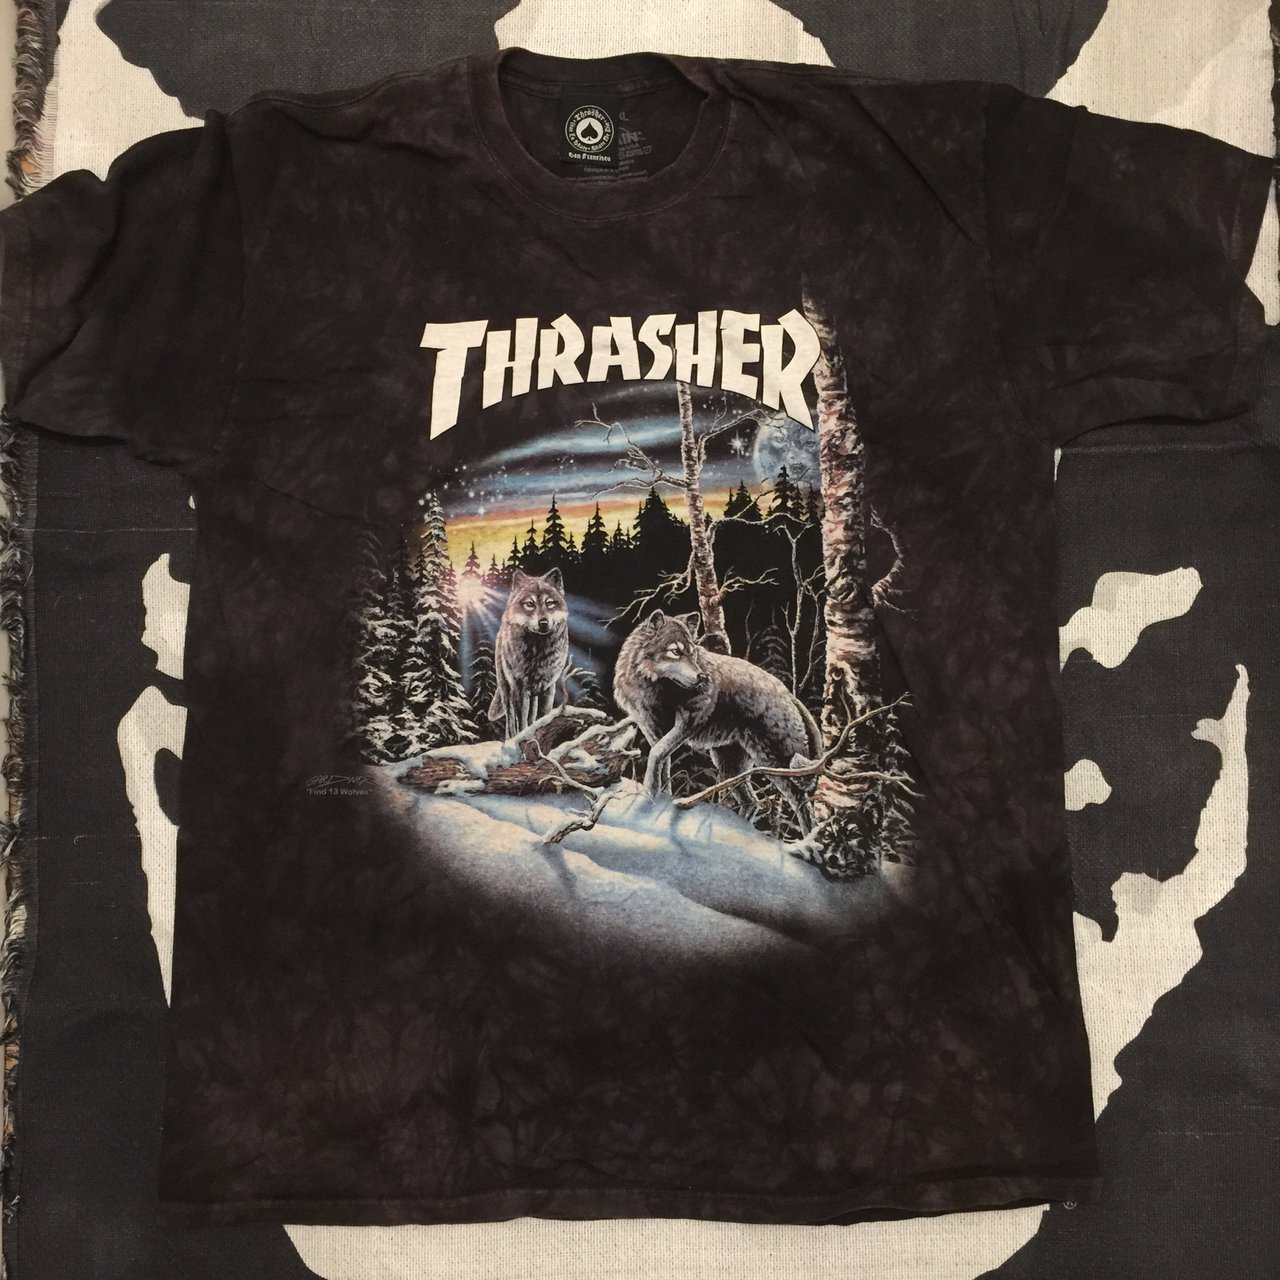 e360a564bda8 Item - Thrasher T Shirt Used Size - XL Color - Black Tie - Depop